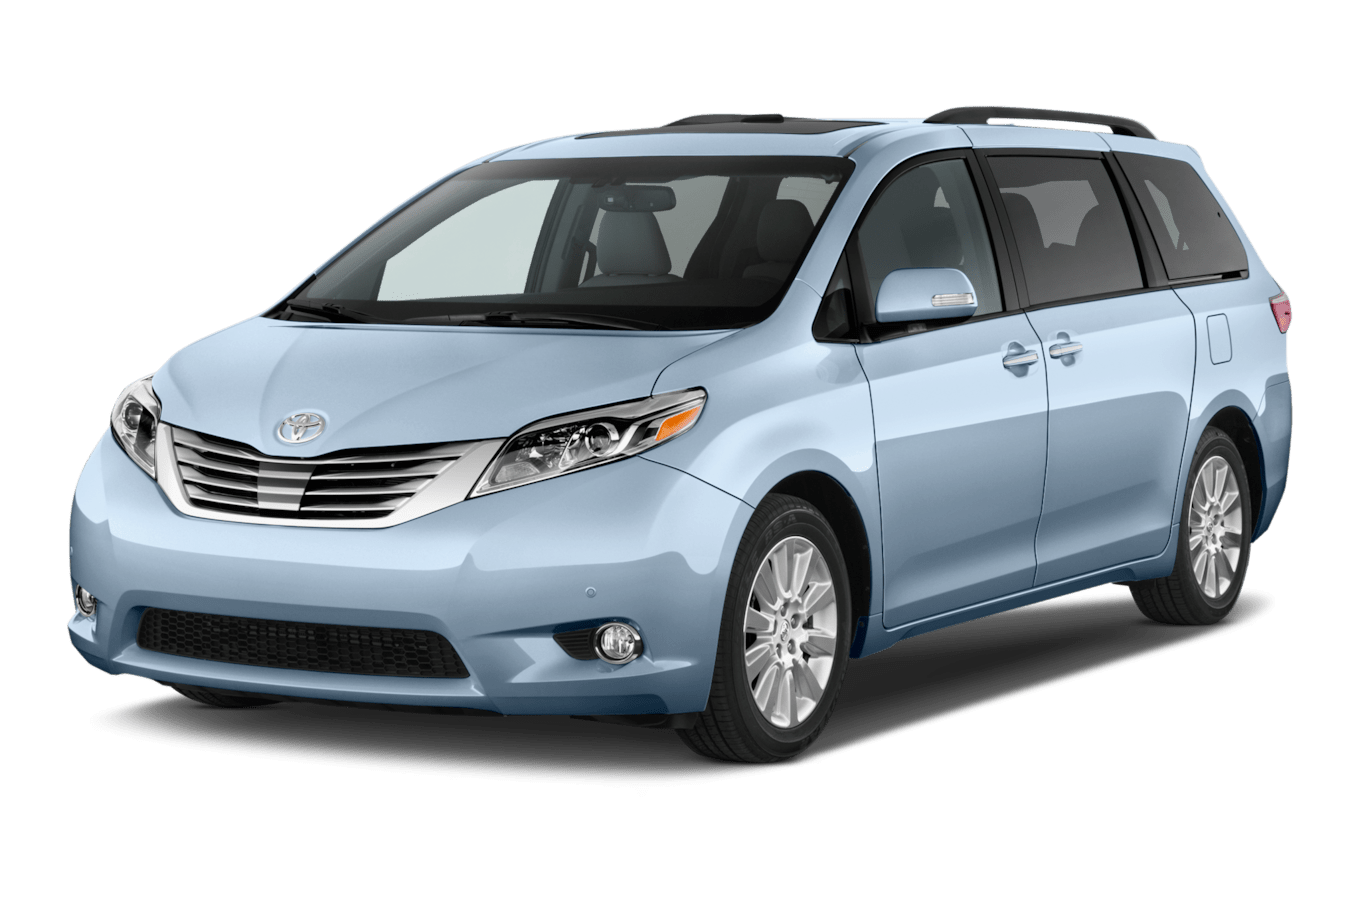 hight resolution of 2015 toyota sienna reviews research sienna prices u0026 specs2015 toyota sienna trailer wiring diagram